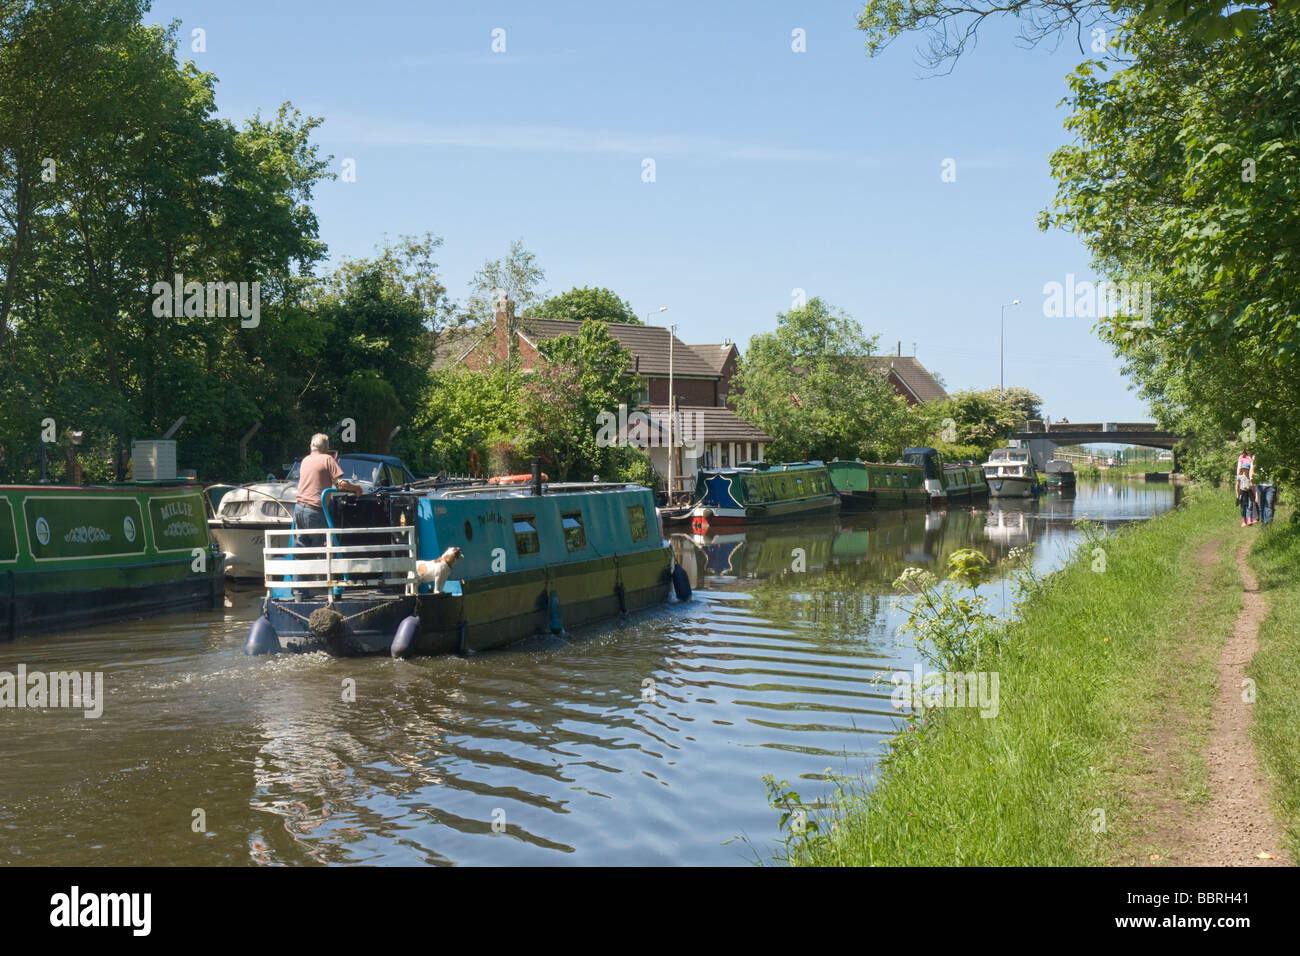 Narrow Boats on the Leeds Liverpool Canal at Scarisbrick, Lancashire - Stock Image